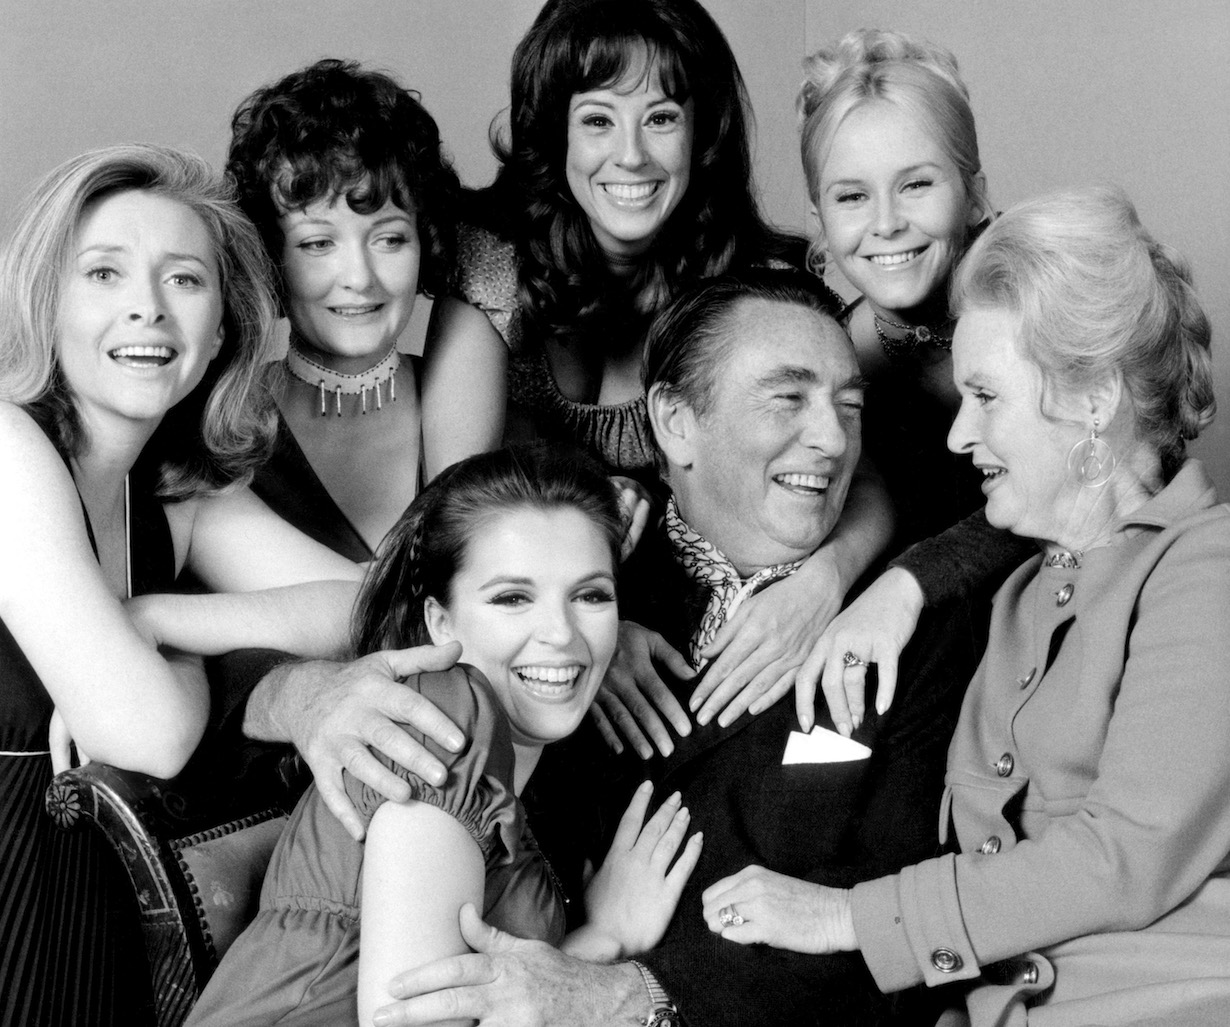 DAYS OF OUR LIVES, Macdonald Carey (center), (l-r starting from front and clockwise): Susan Seaforth Hayes, Susan Flannery, Marie Cheatham, Denise Alexander, Heather North, Frances Reid (1970), 1965-, (c)NBC/courtesy Everett Collection